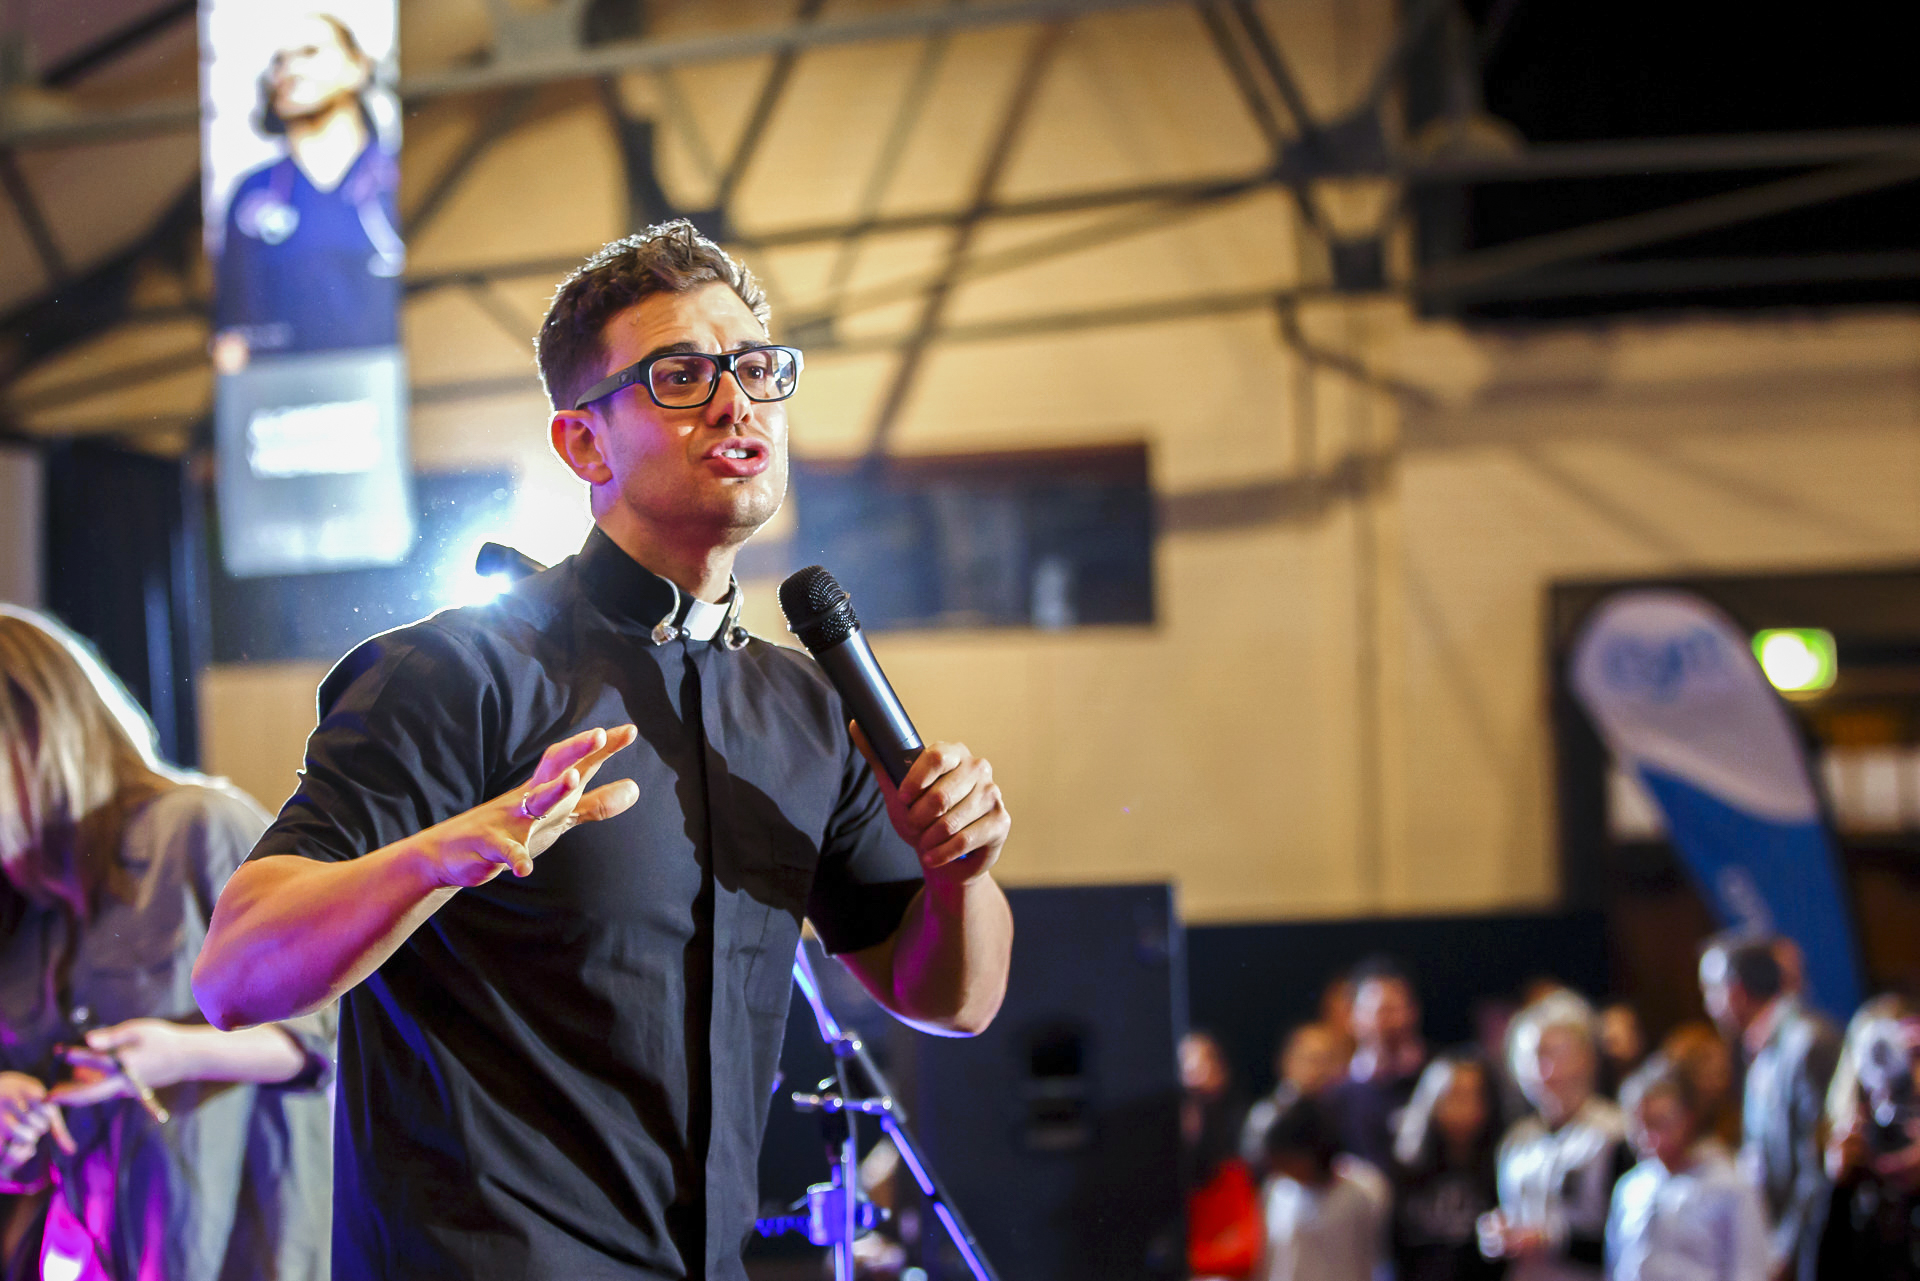 A new theme song has been released ahead of the 2019 Australian Catholic Youth Festival. The new song and video clip has been created by Sandhurst priest and international musician Fr Rob Galea. Photo: Iceberg Media.